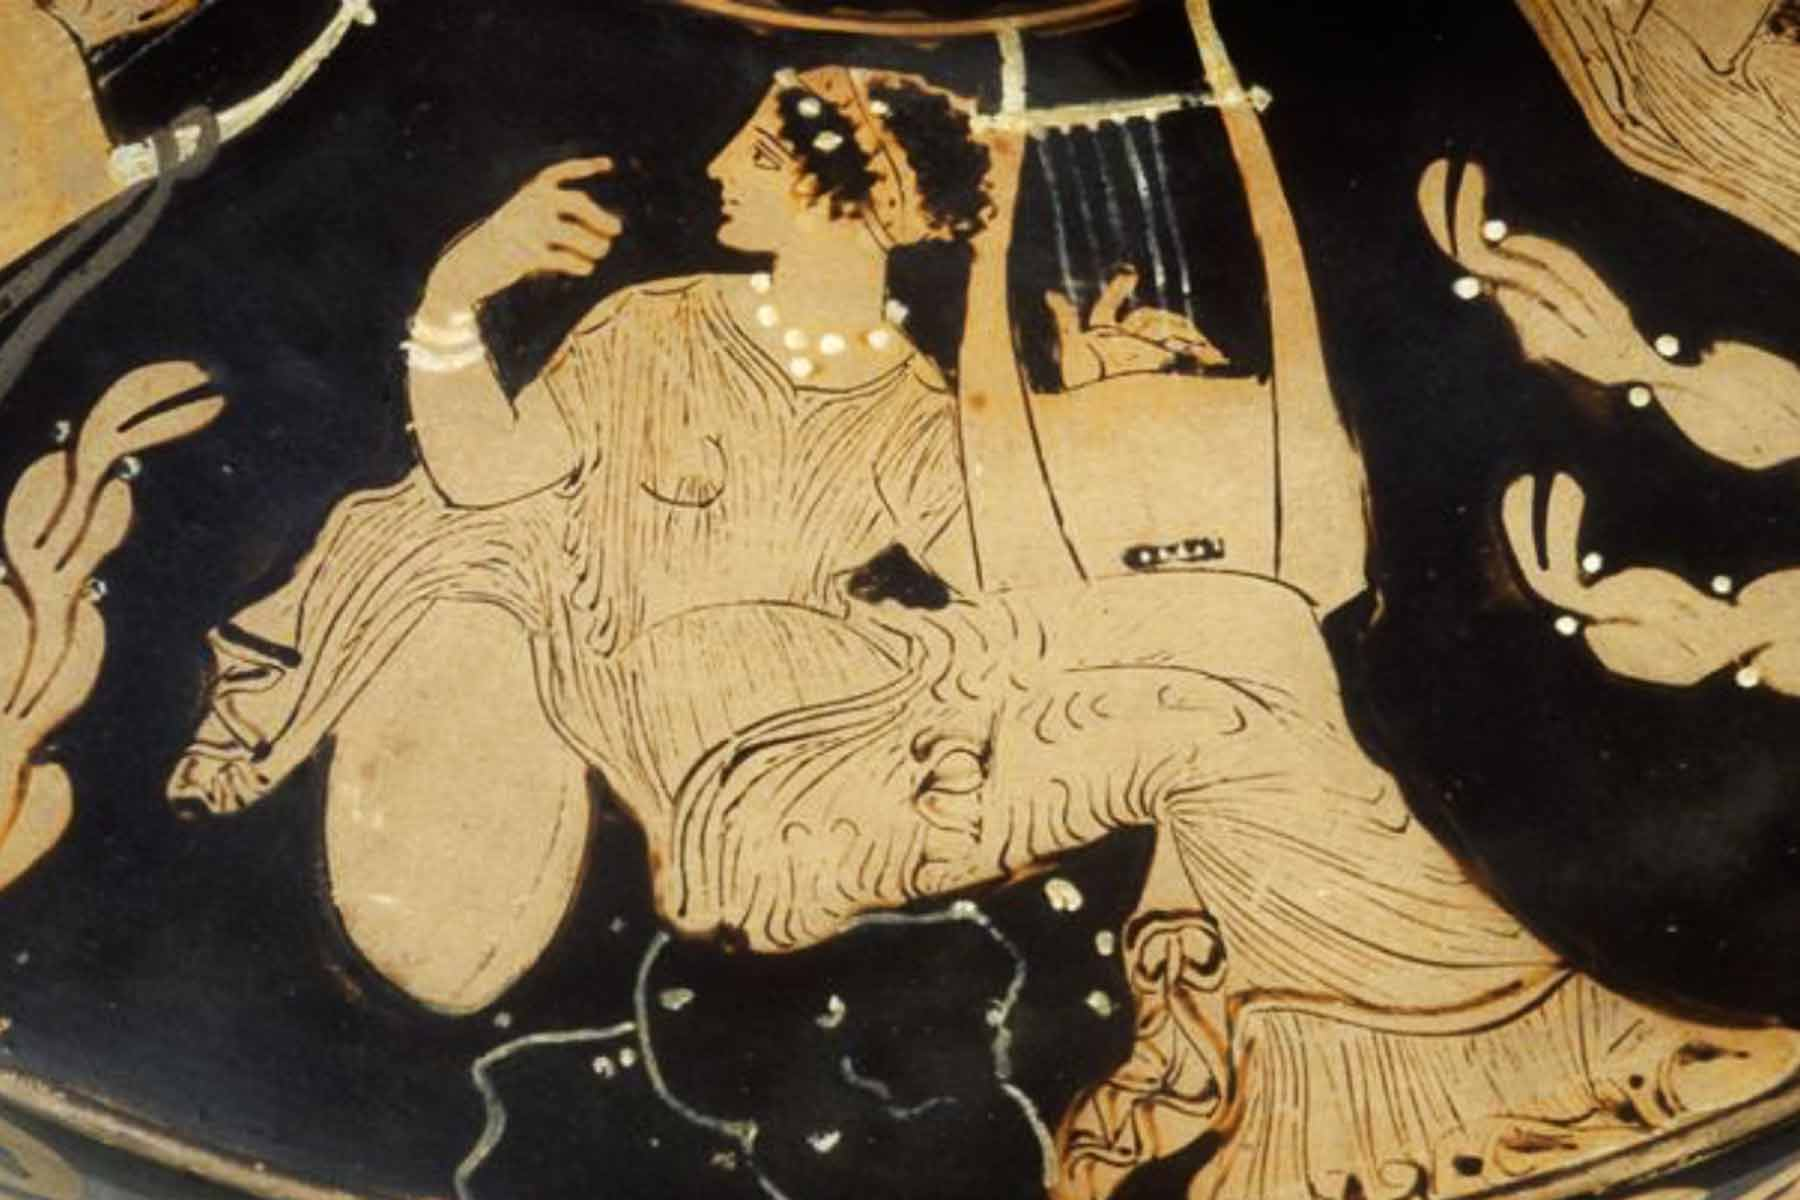 ic: Muse with kithara, detail of lid of Paestan red-figure pottery. Photograph by Maria Daniels, courtesy of the Musée du Louvre, January 1992.